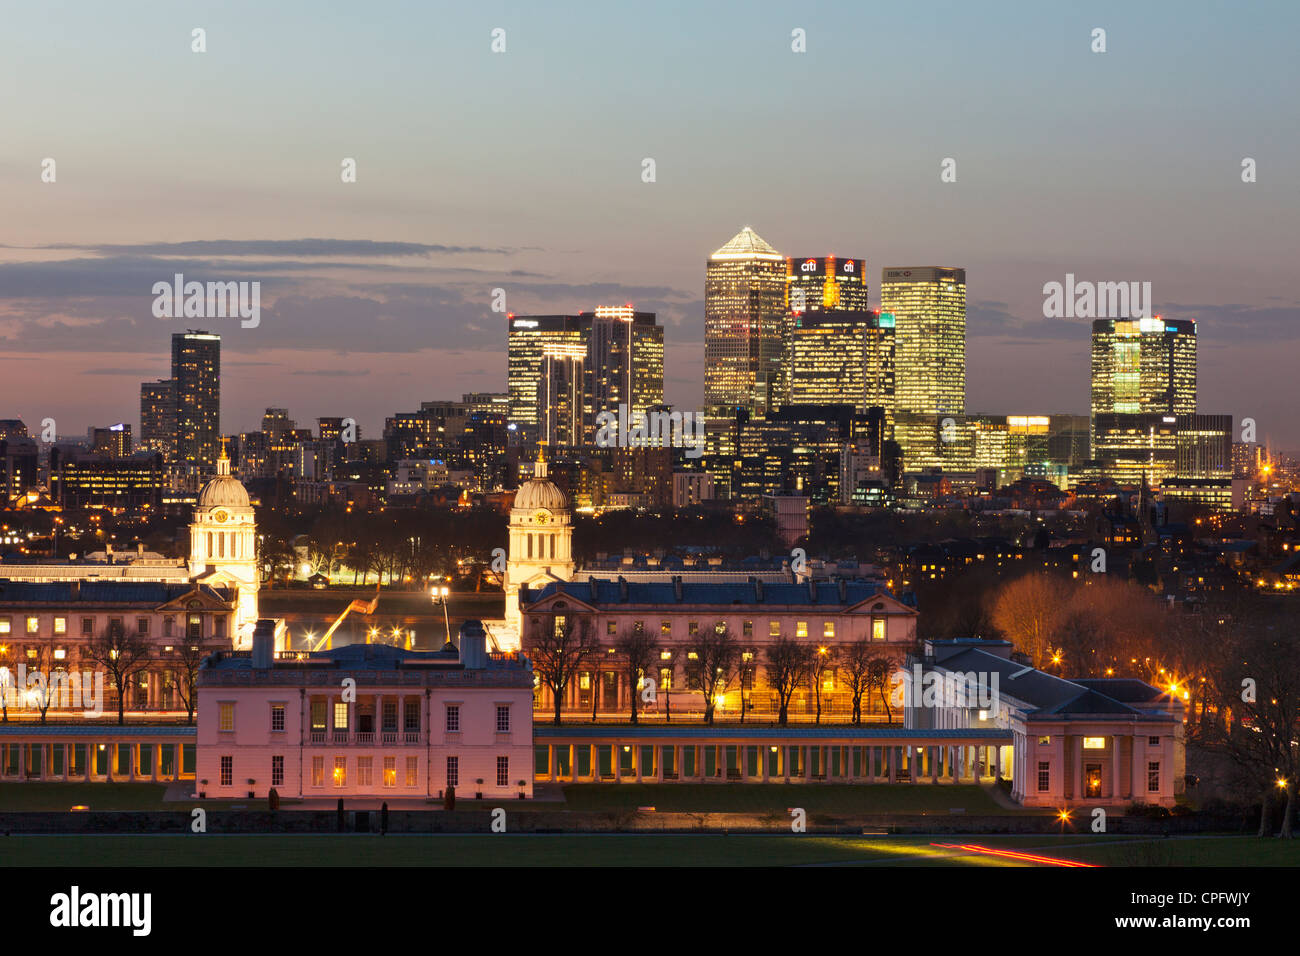 England, London, Greenwich, View of Docklands from Greenwich Park - Stock Image